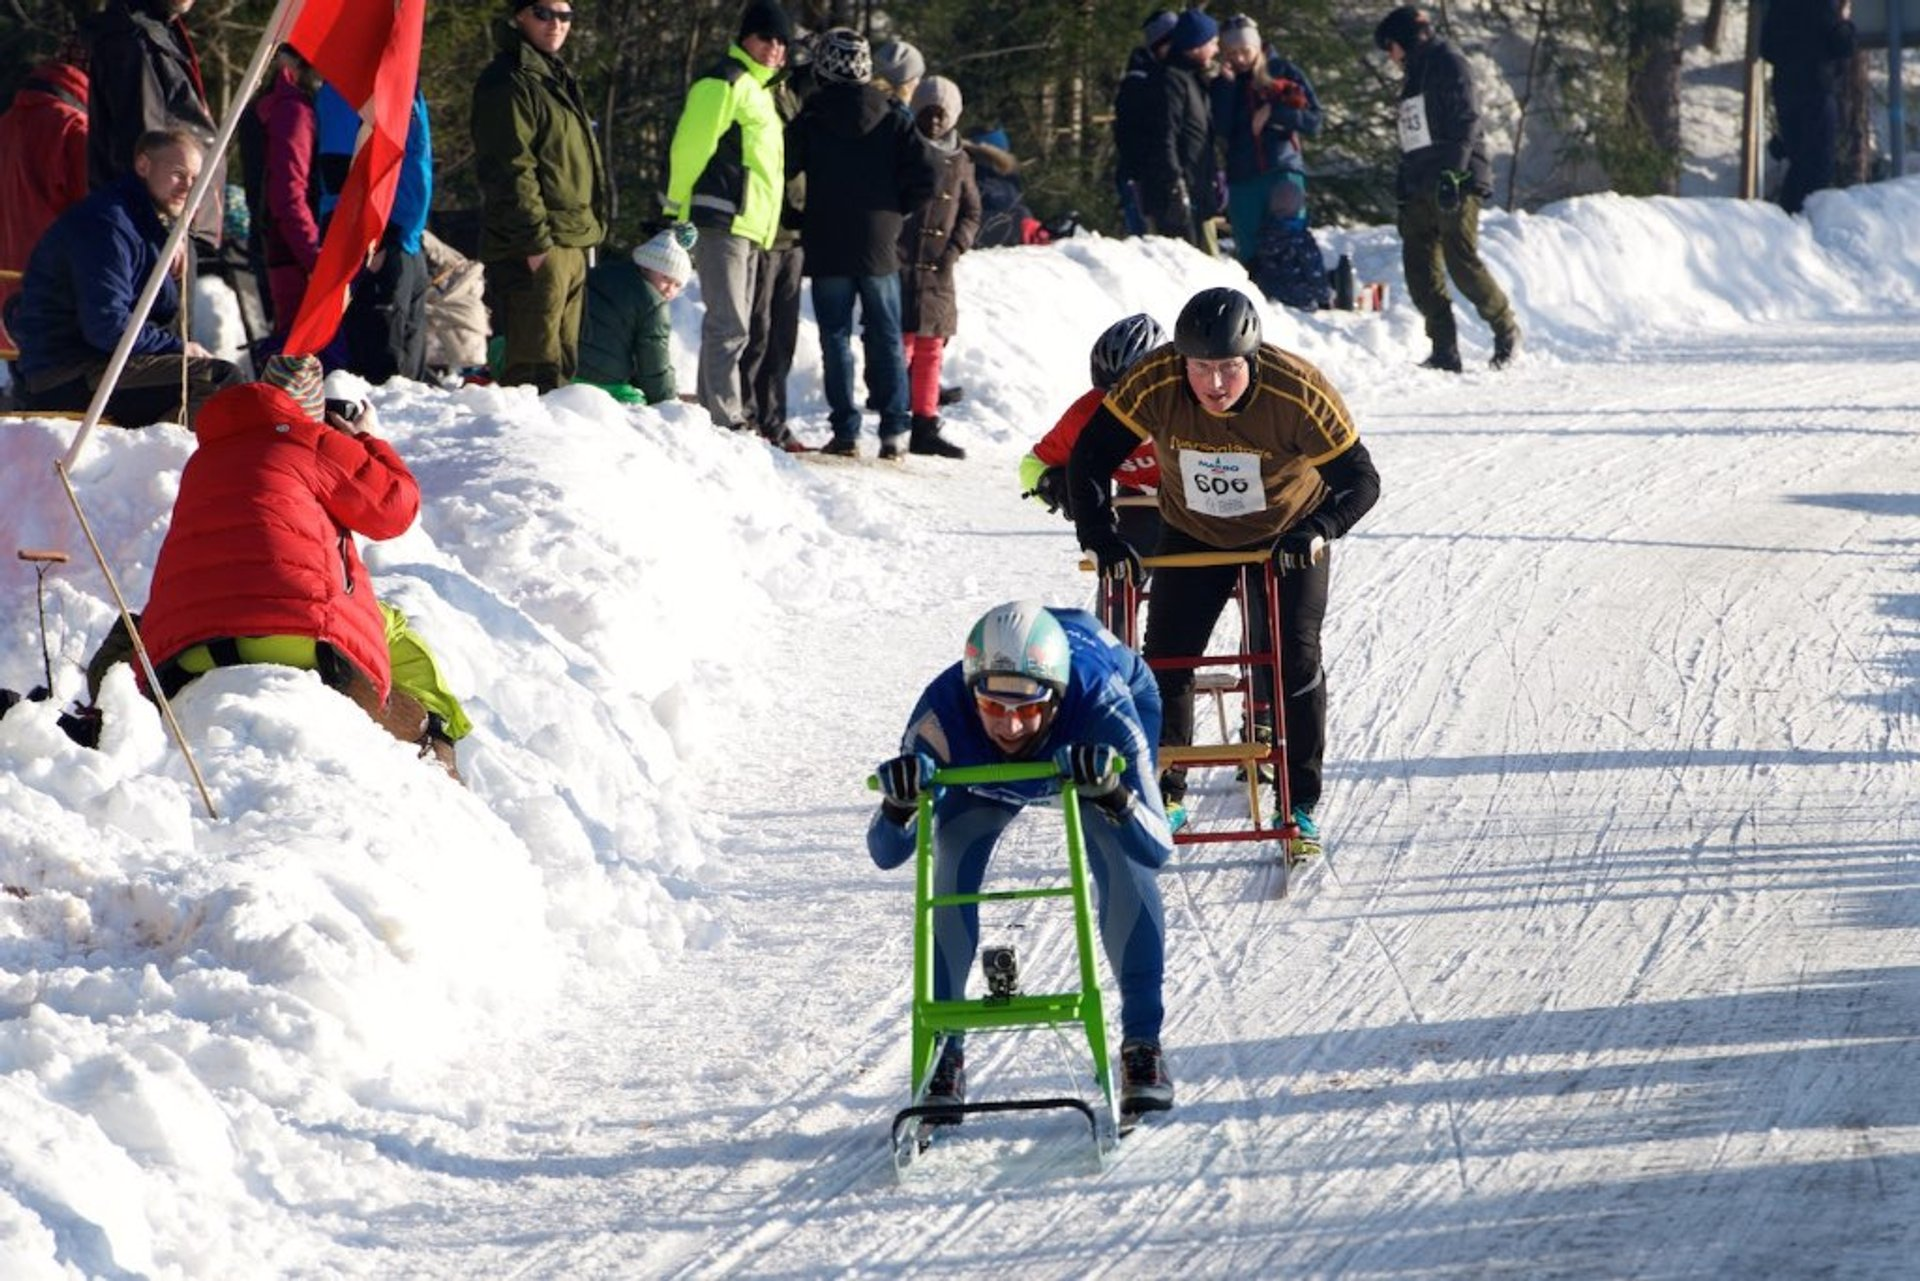 Kicksled World Championship in Norway - Best Season 2020